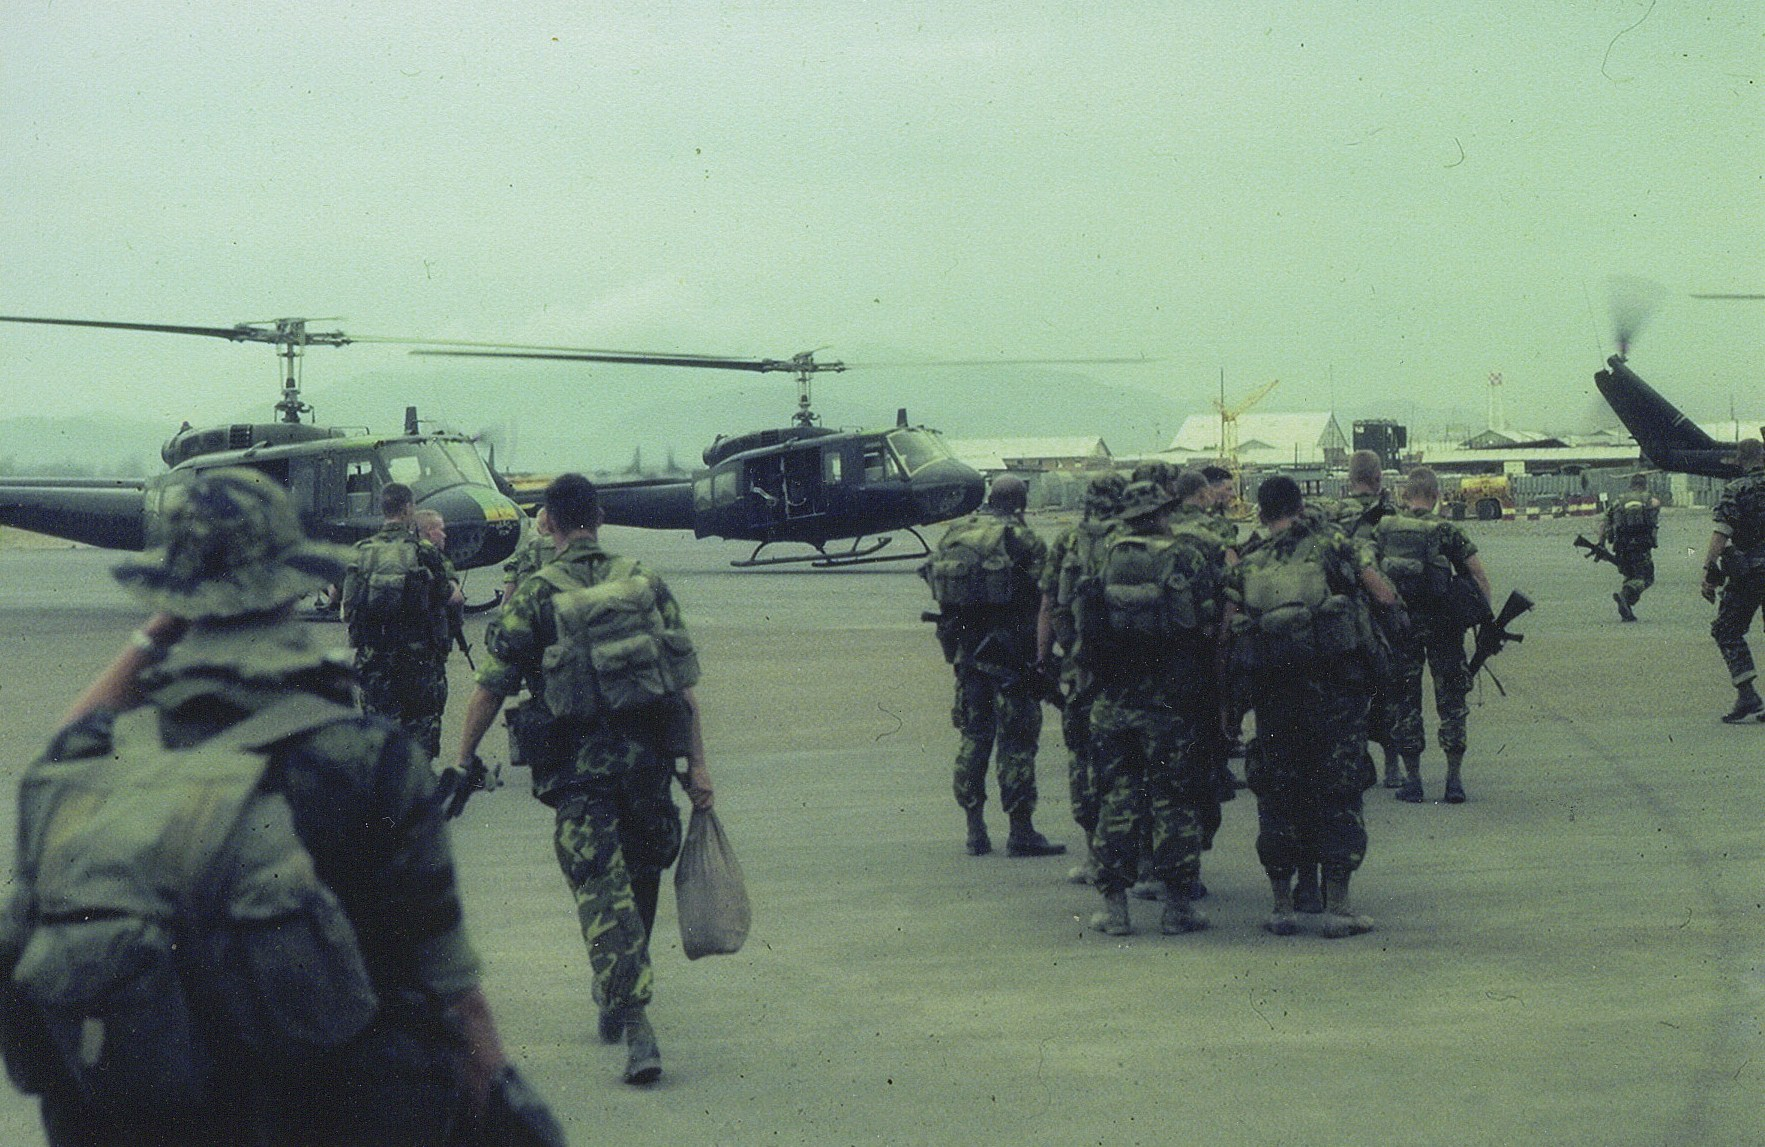 Recon teams loading choppers for insertion RVN